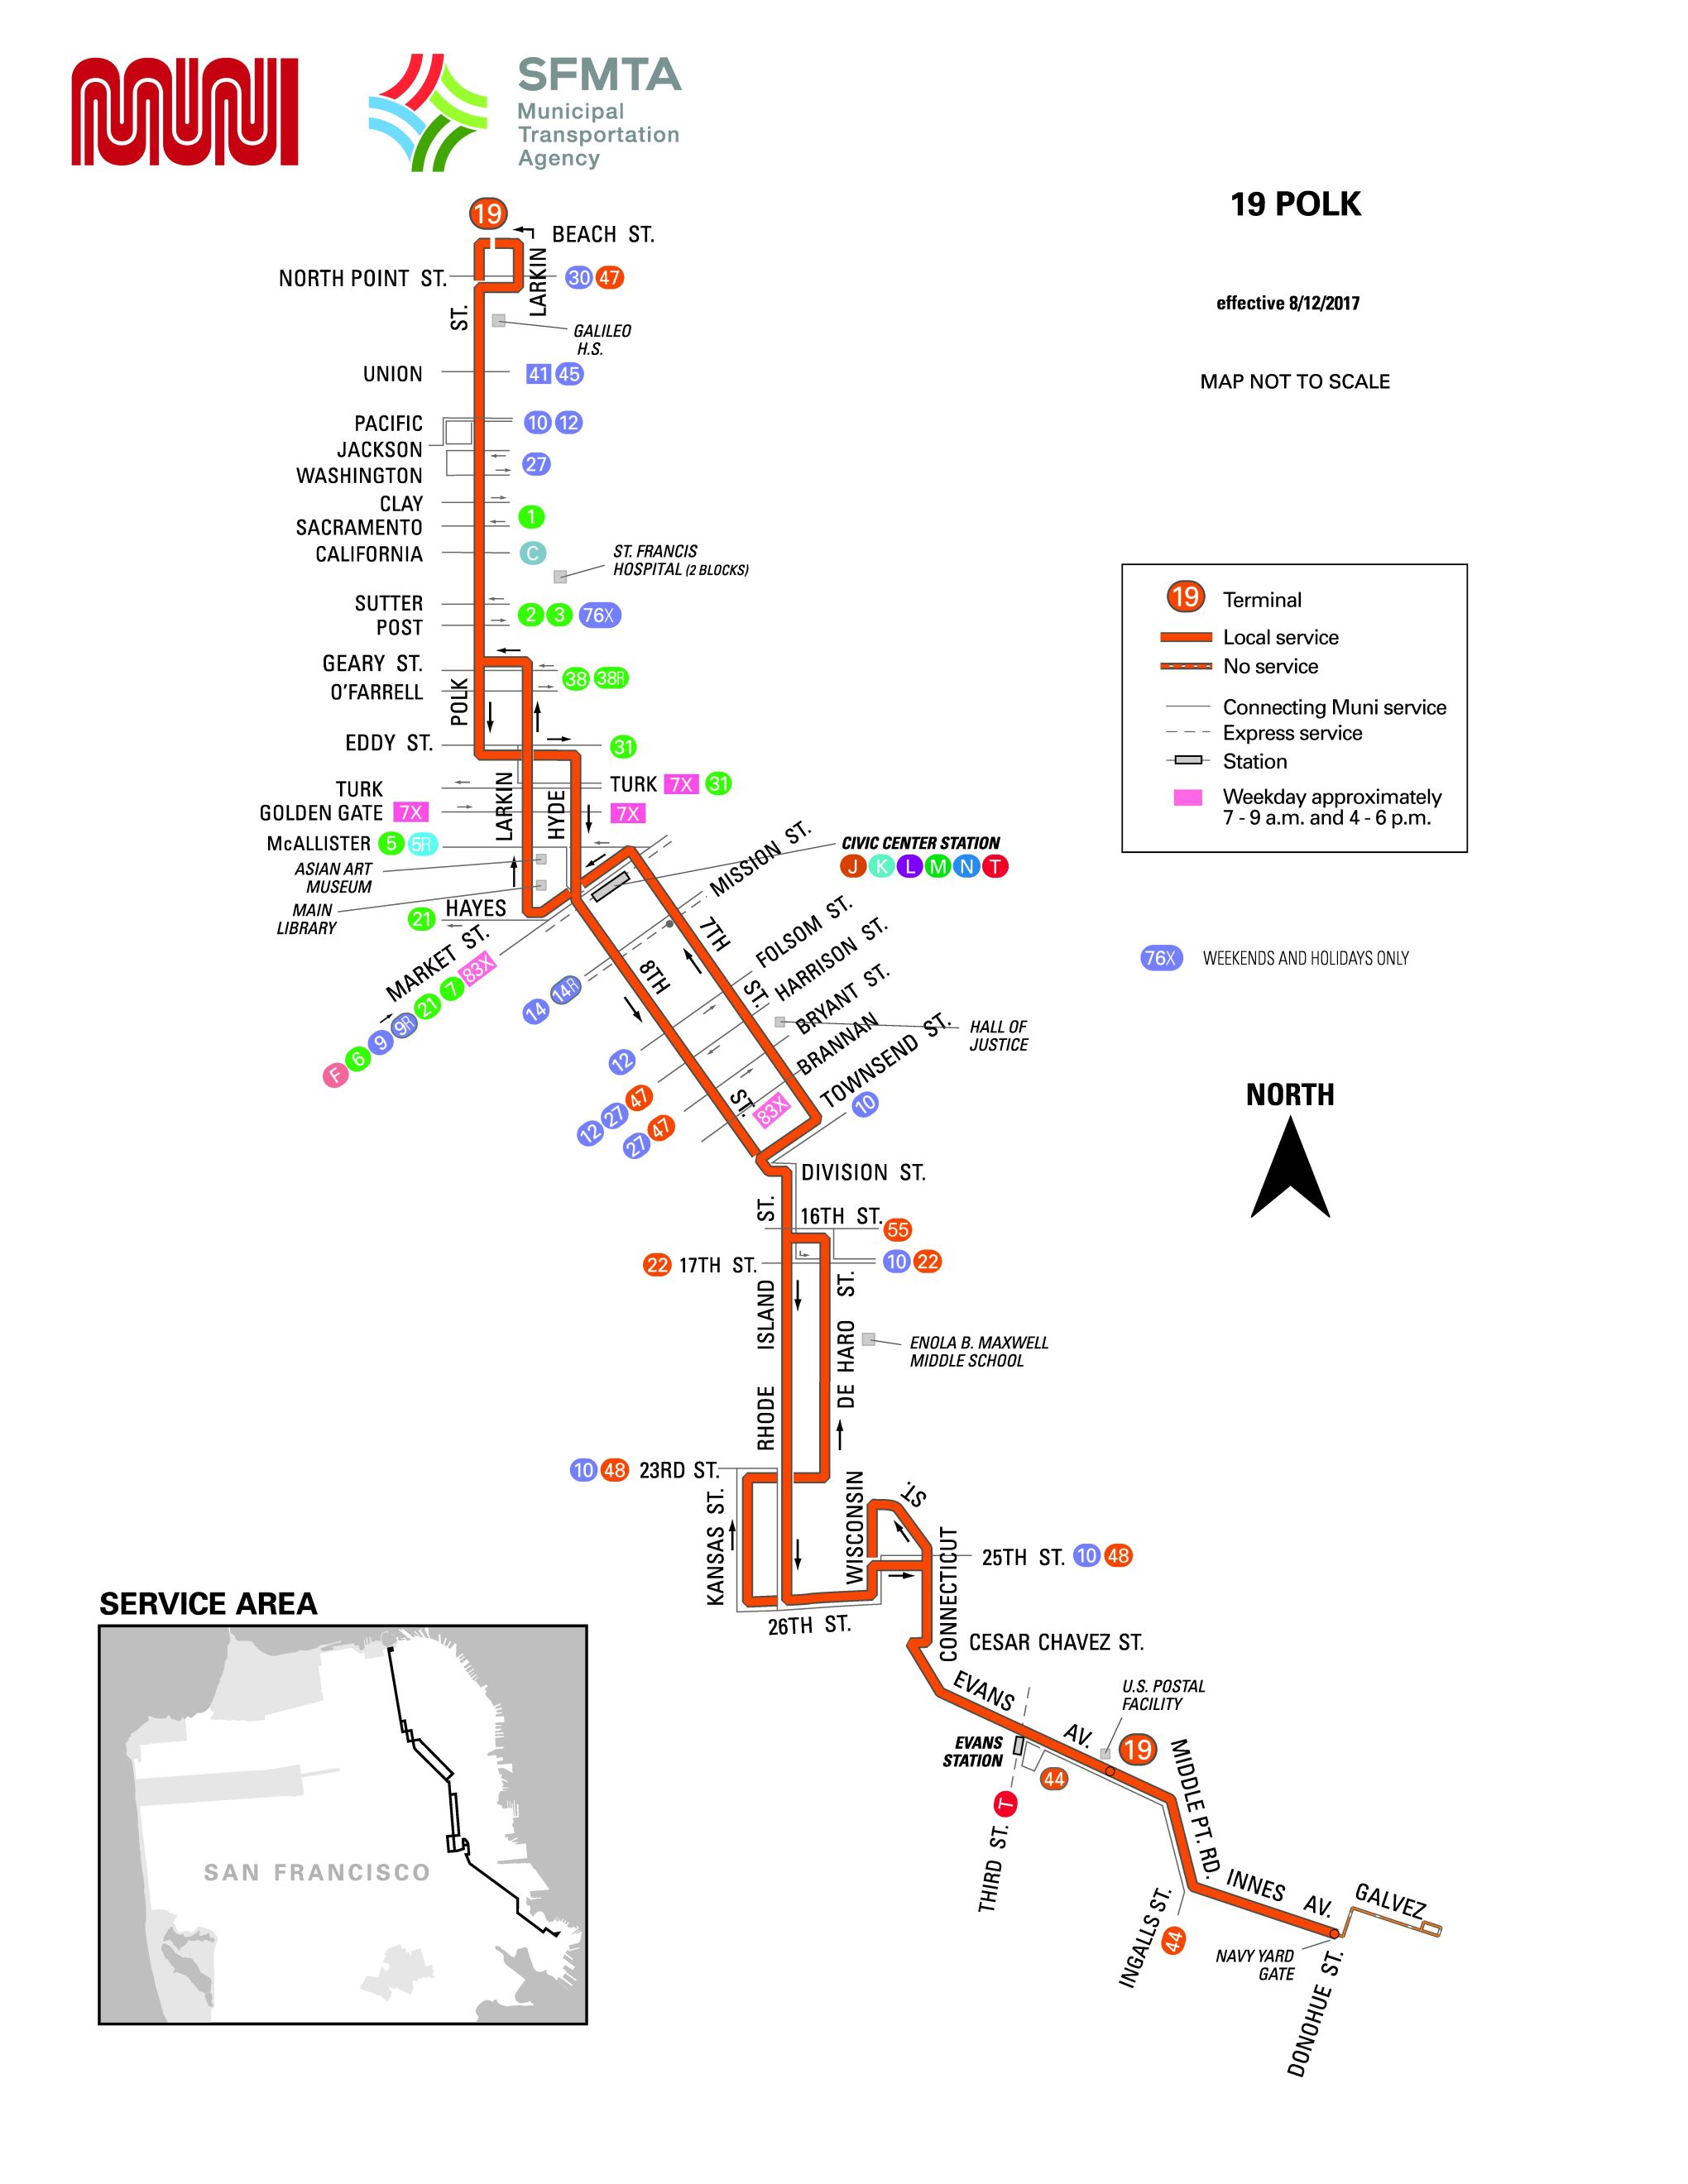 route_19 Saigon Bus Route Map on qm5 bus map, bus models, bus template, b47 bus map, b13 bus map, bus routes in maui hawaii, bus schedule, bus routes logo, bus travel to georgia, bus routes in central london, bus routes oahu hawaii, m35 bus map, bus stop location map, bus routes colorado springs co, bus routes los angeles, bus field trip, bus seat map, bus routes in plymouth england, bus san francisco 1960,